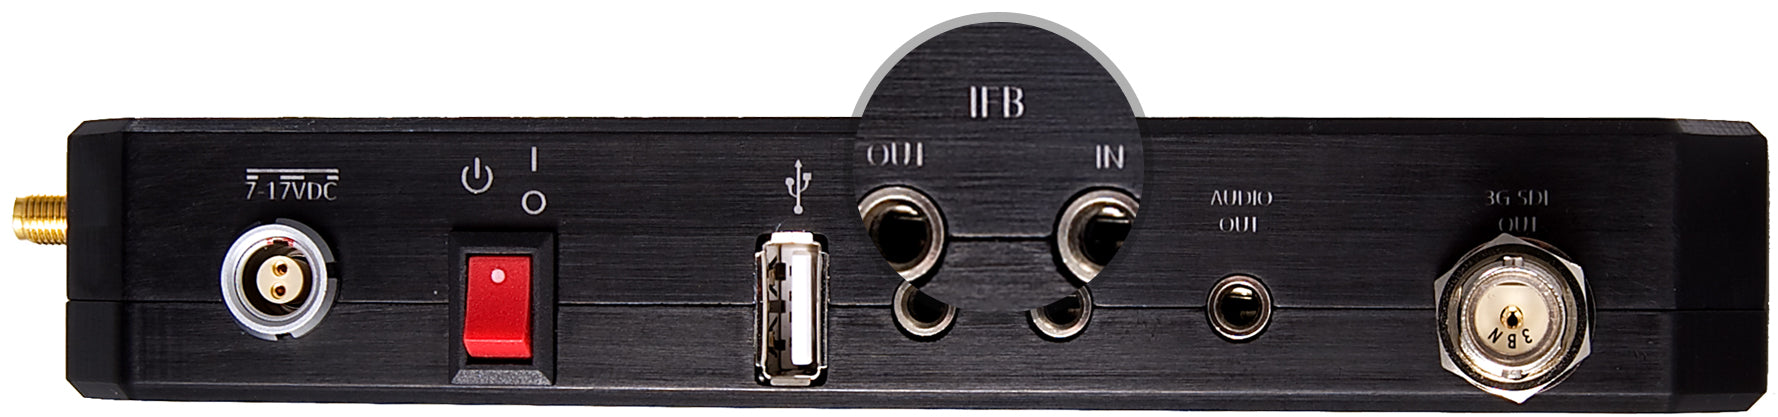 Beam side panel with IFB channel highlighted